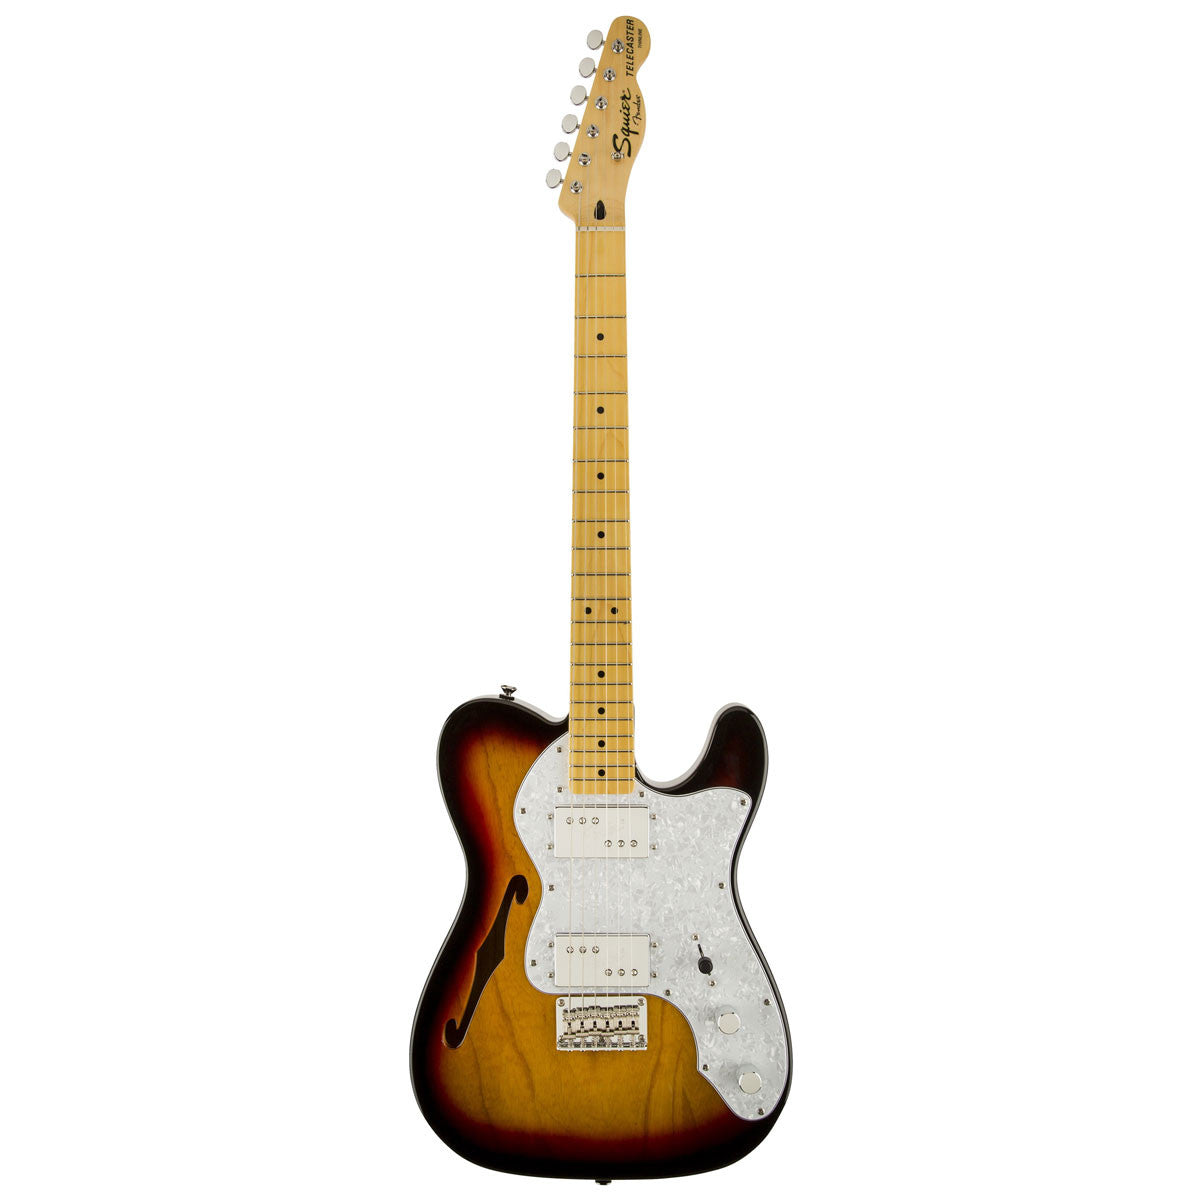 Squier Vintage Modified '72 Tele Thinline - Maple - 3-Color Sunburst - Vintage Guitar Boutique - 2